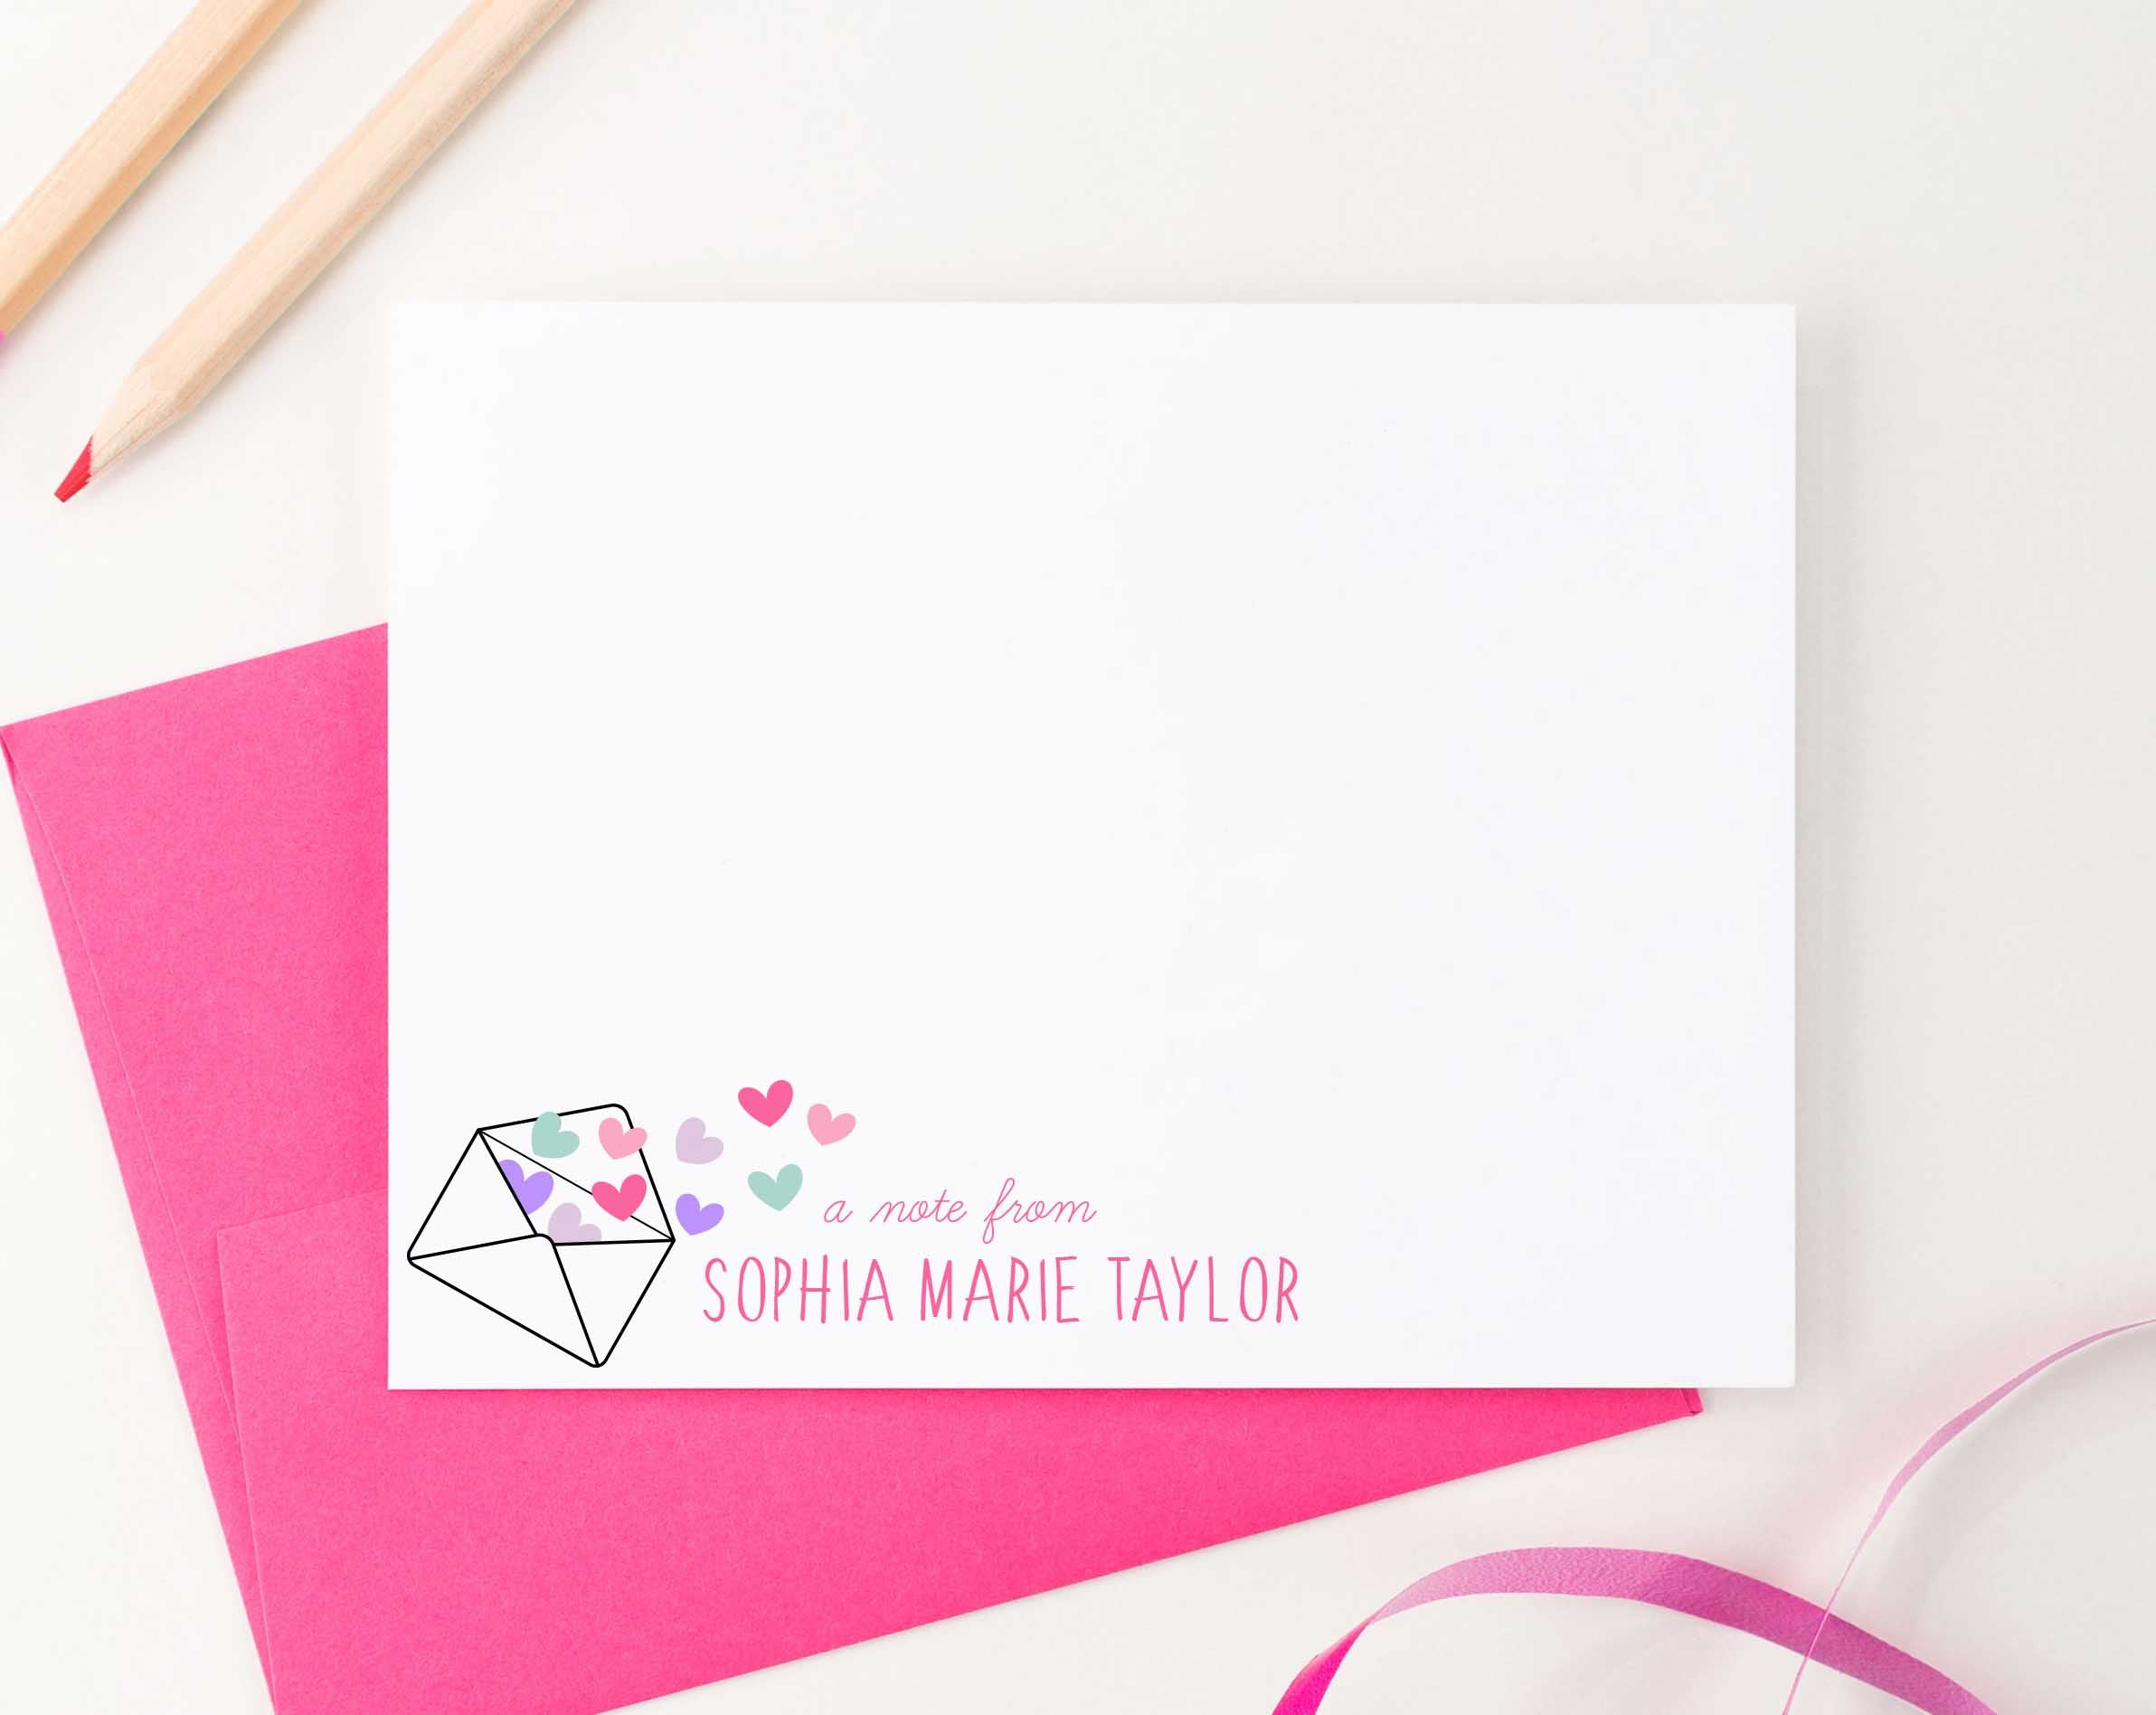 Cupcake Stationery Girls Birthday Gift Girls Gift Lovely Little Party notecards Kids Stationery Cupcake Hearts Personalized Notecards